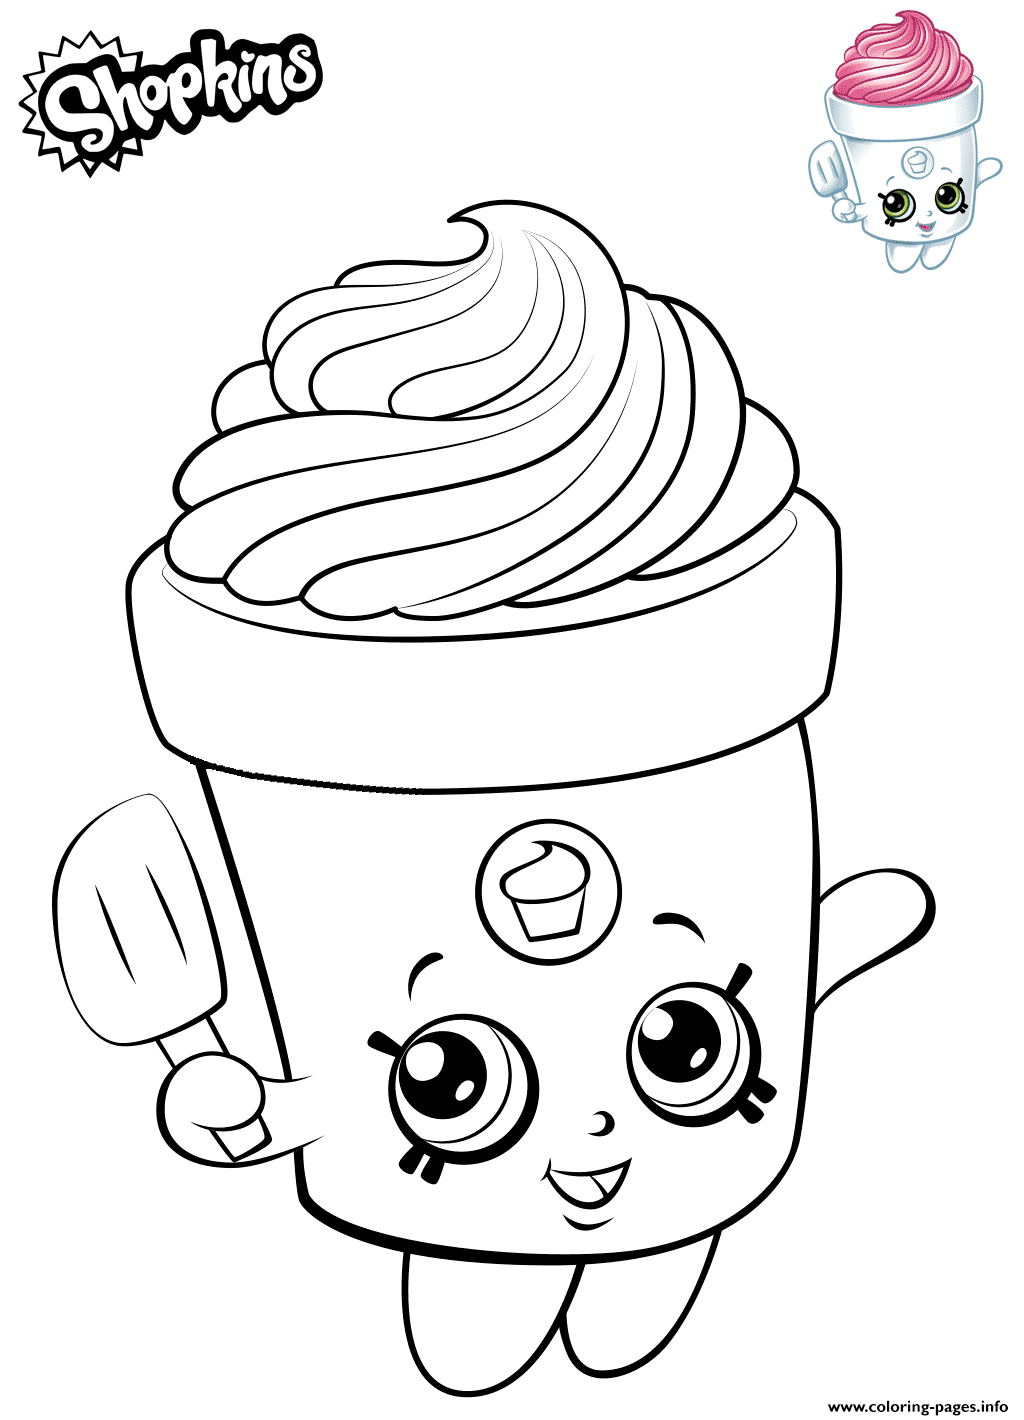 Cute Shopkins Freda Frosting coloring pages